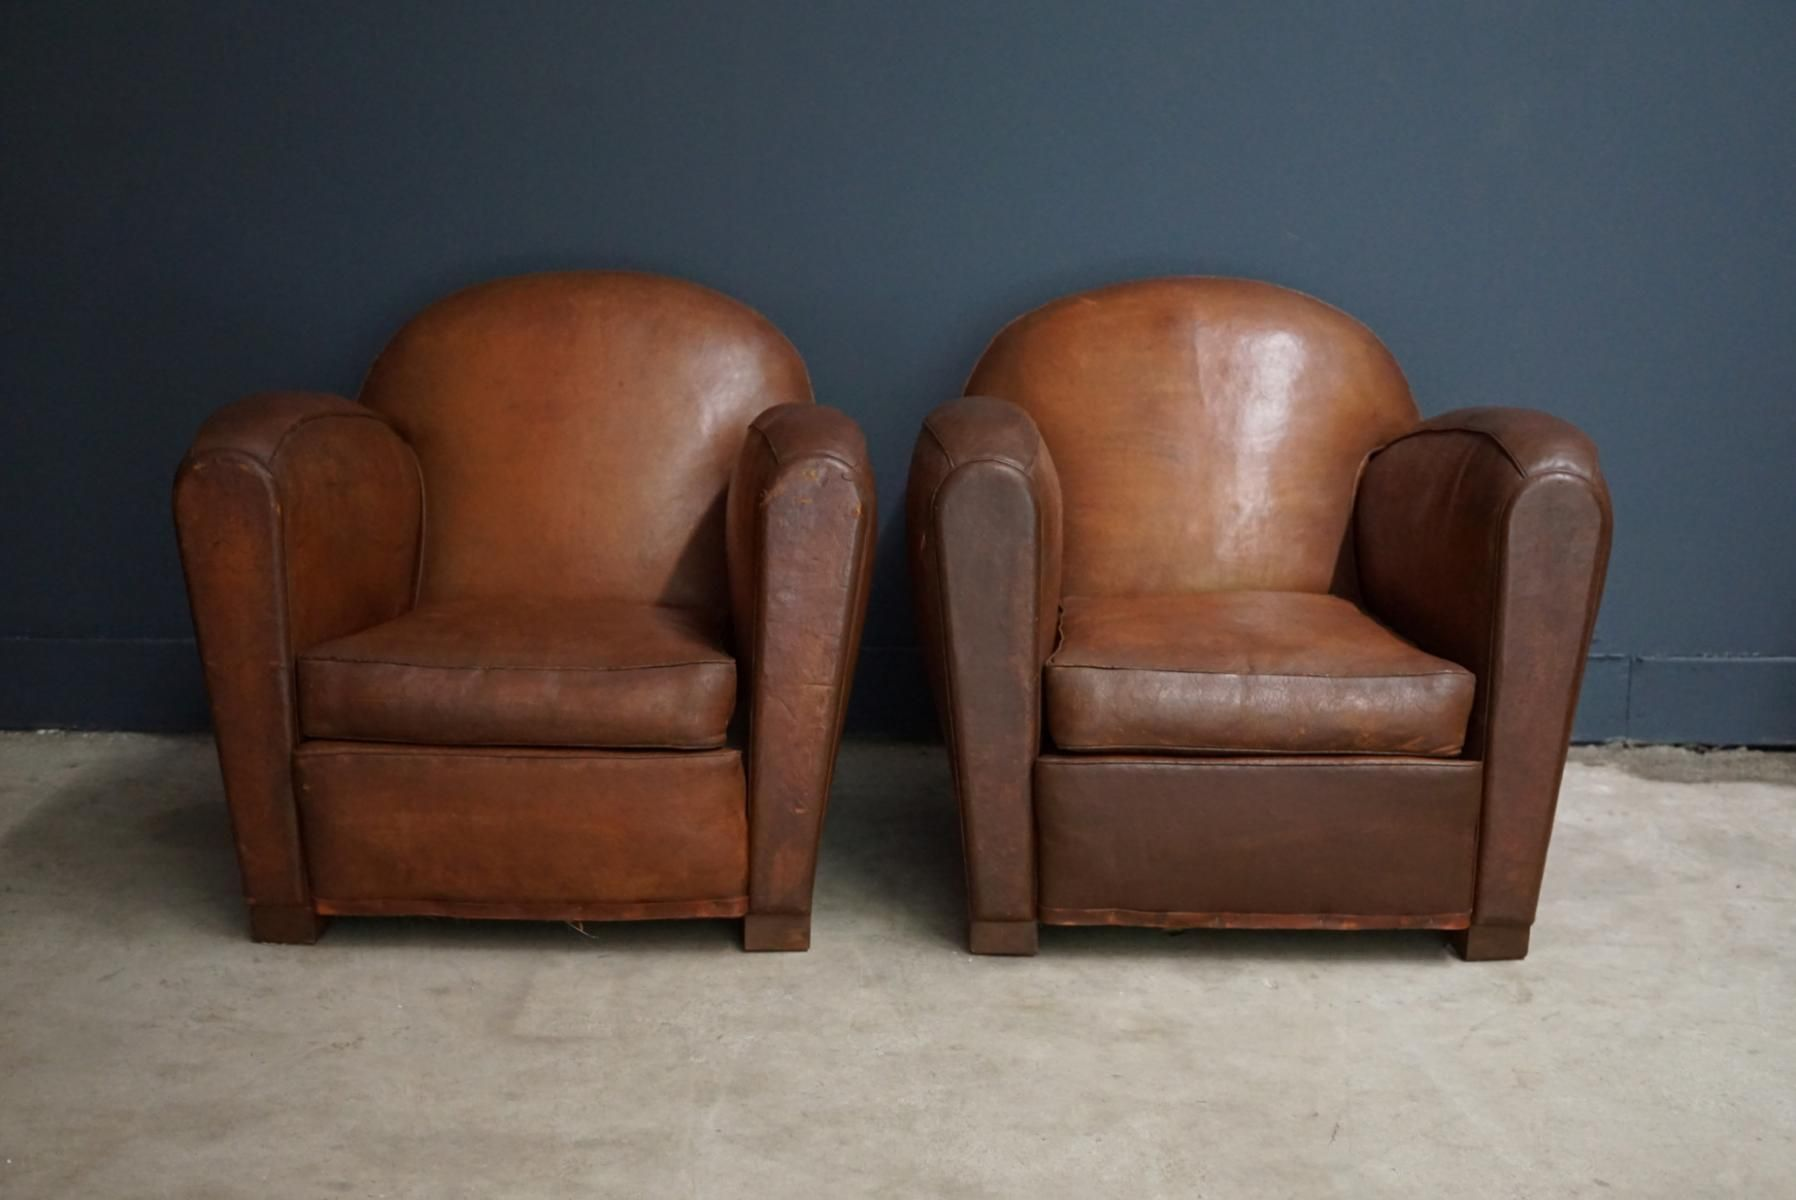 Vintage French Cognac Leather Club Chairs Set Of 2 Bei Pamono Kaufen Clubsessel Französisches Vintage Sessel